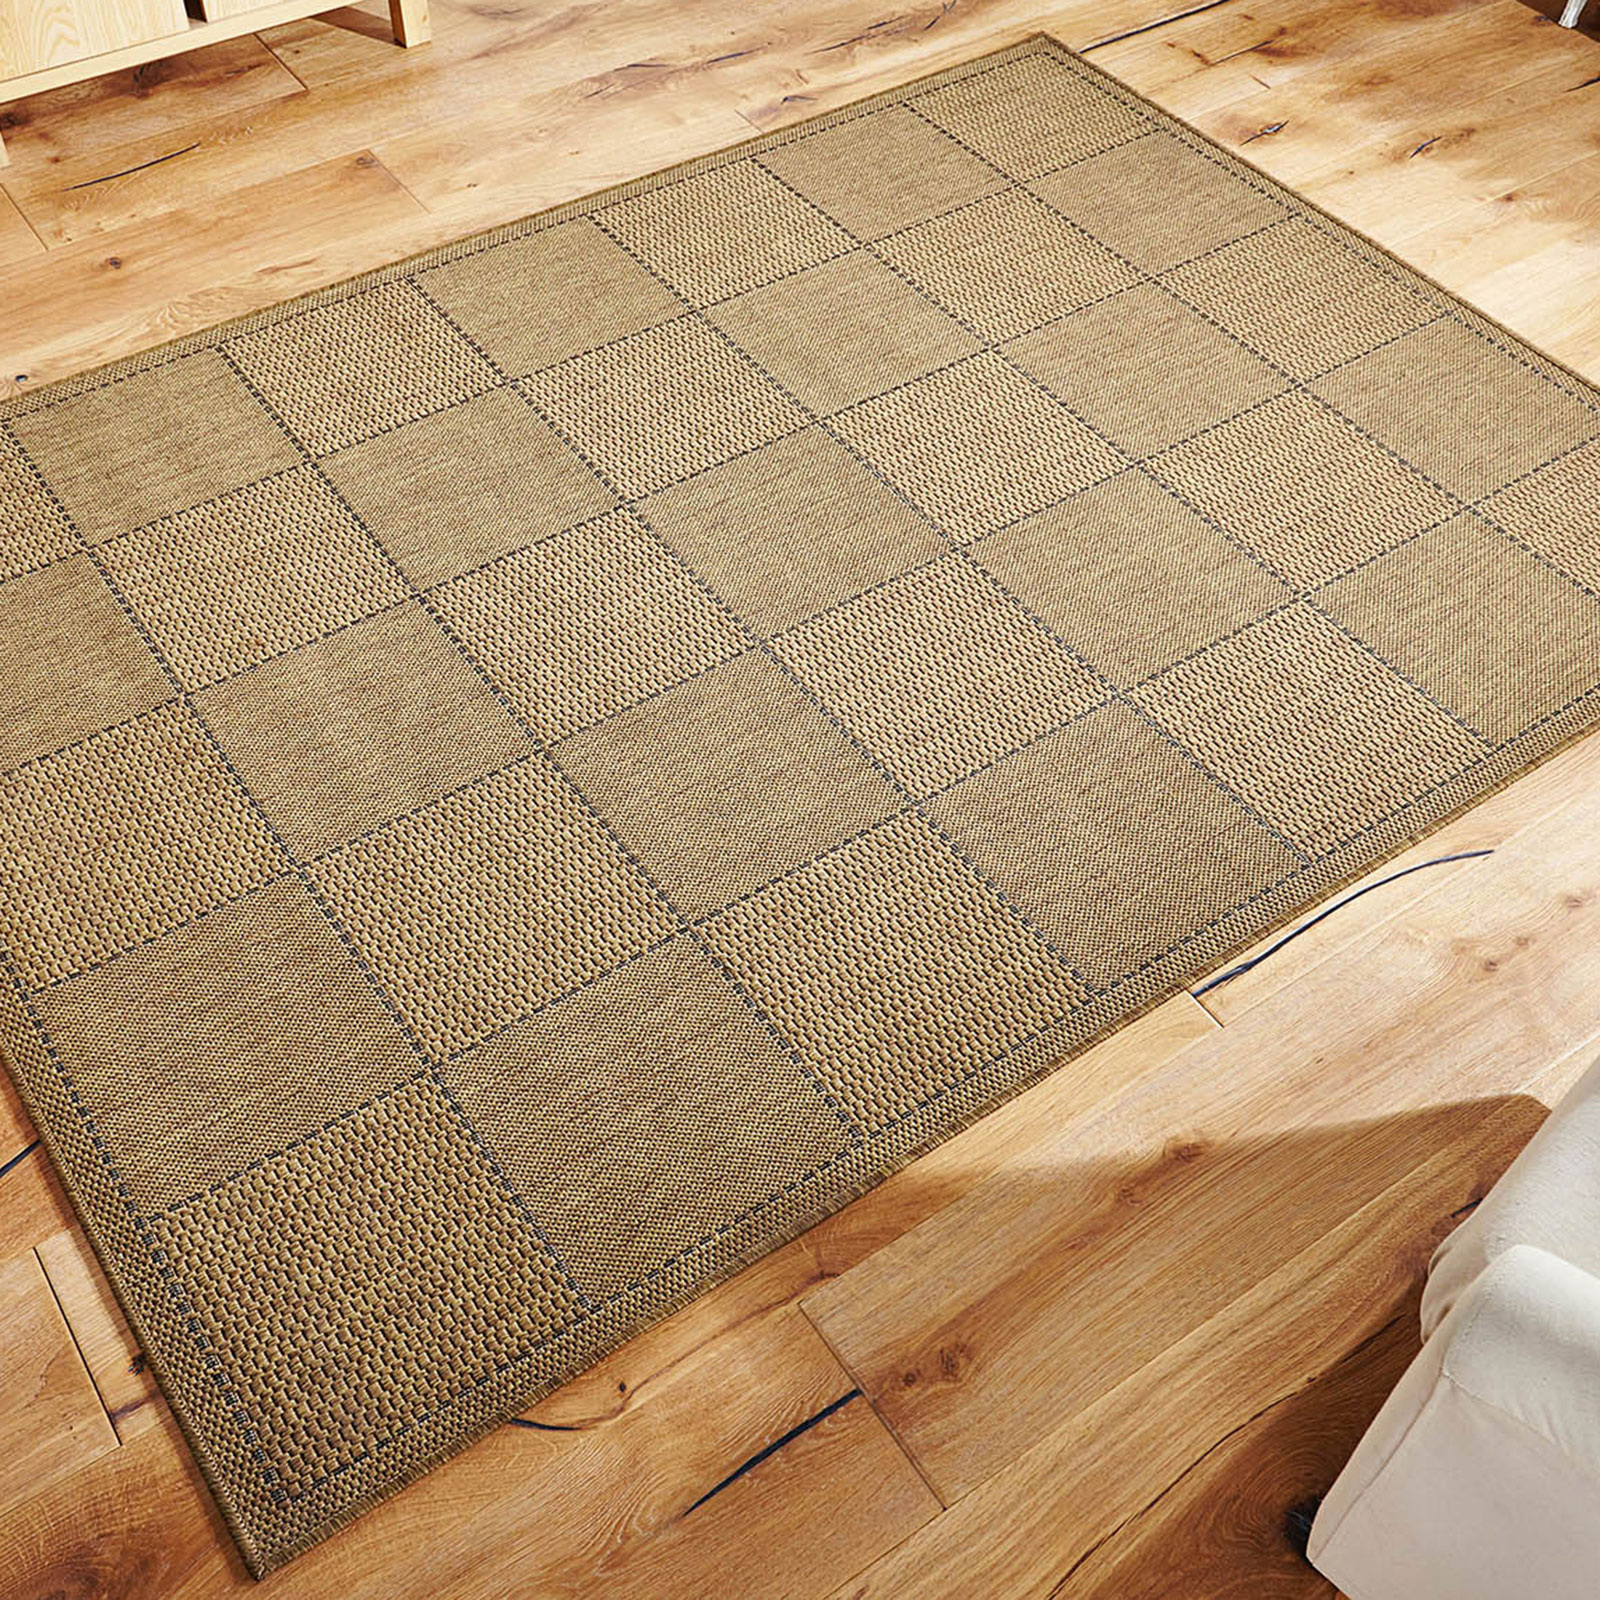 Checked-Flatweave-Natural-Roomshot.jpg